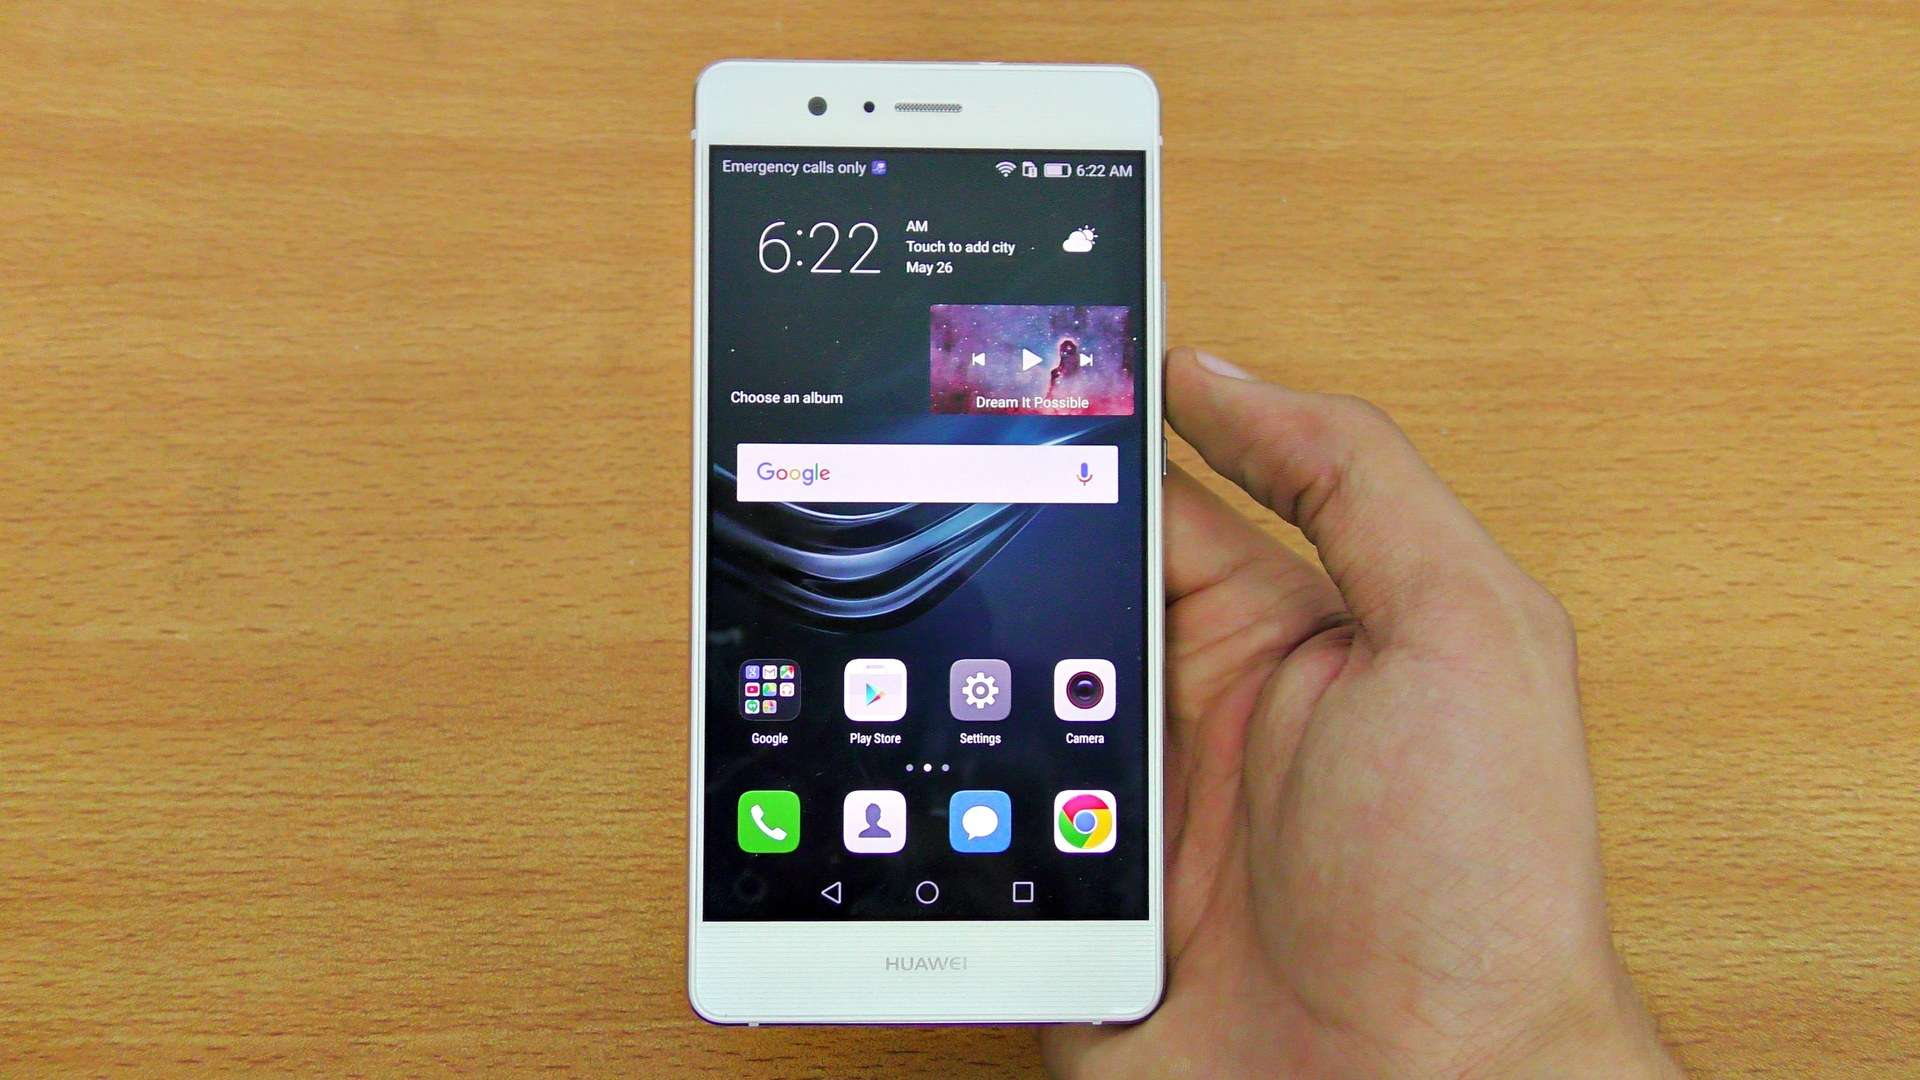 How to Root the Huawei P9 Lite